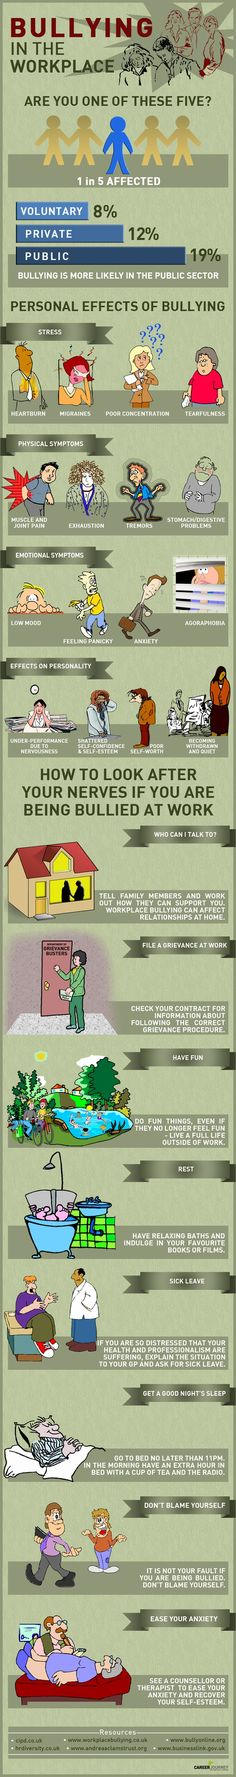 Great Infographic Details Workplace Bullying | OUR BULLY PULPIT